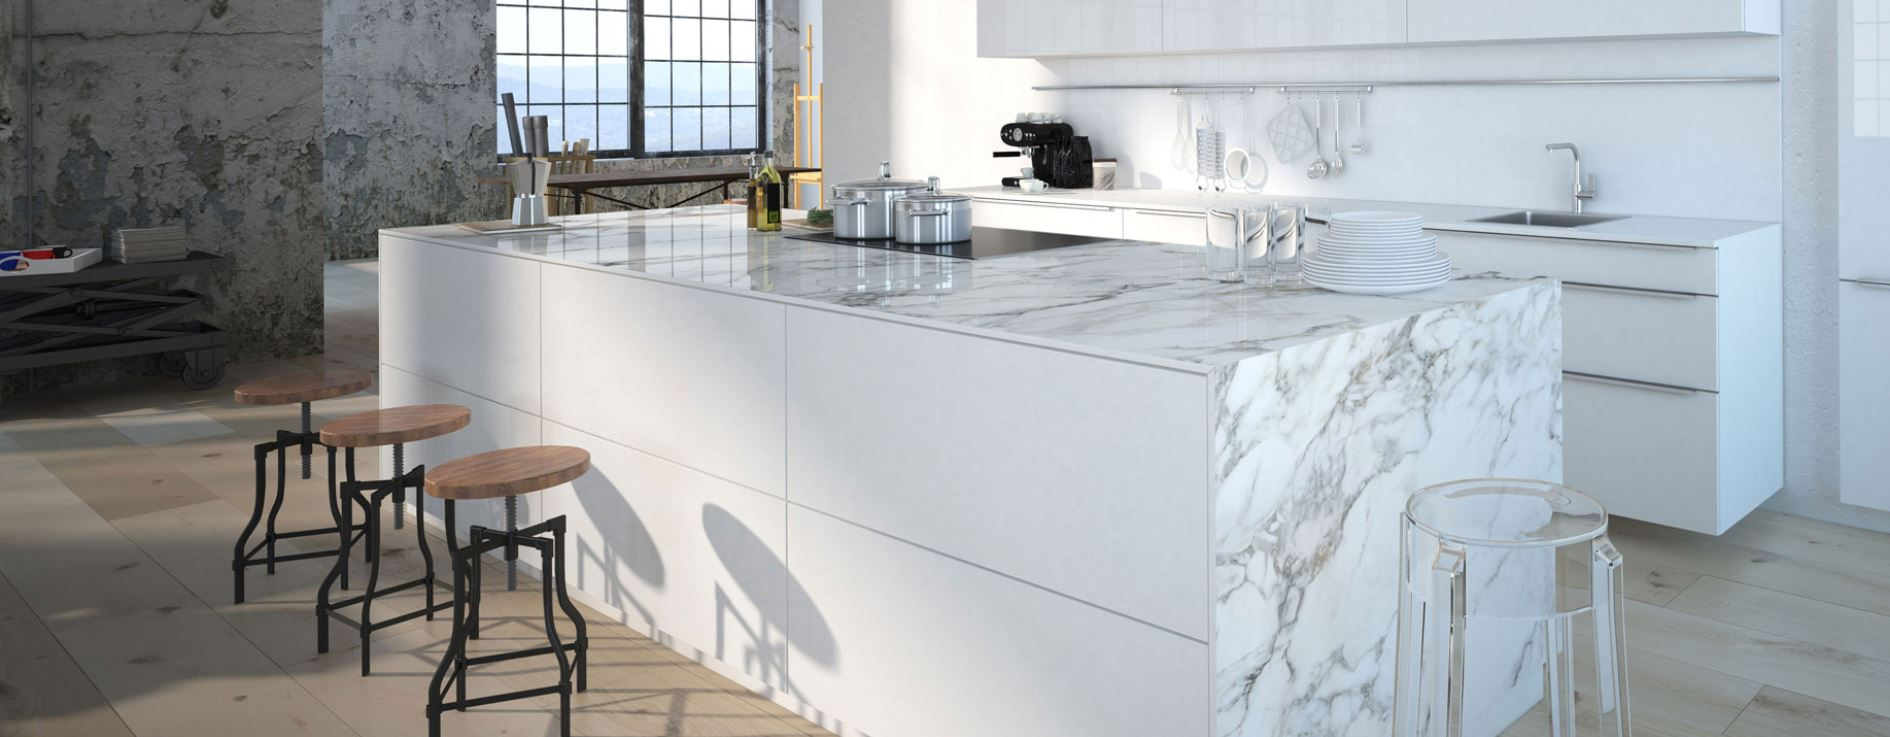 Porcelain Countertops The Stone Brothers